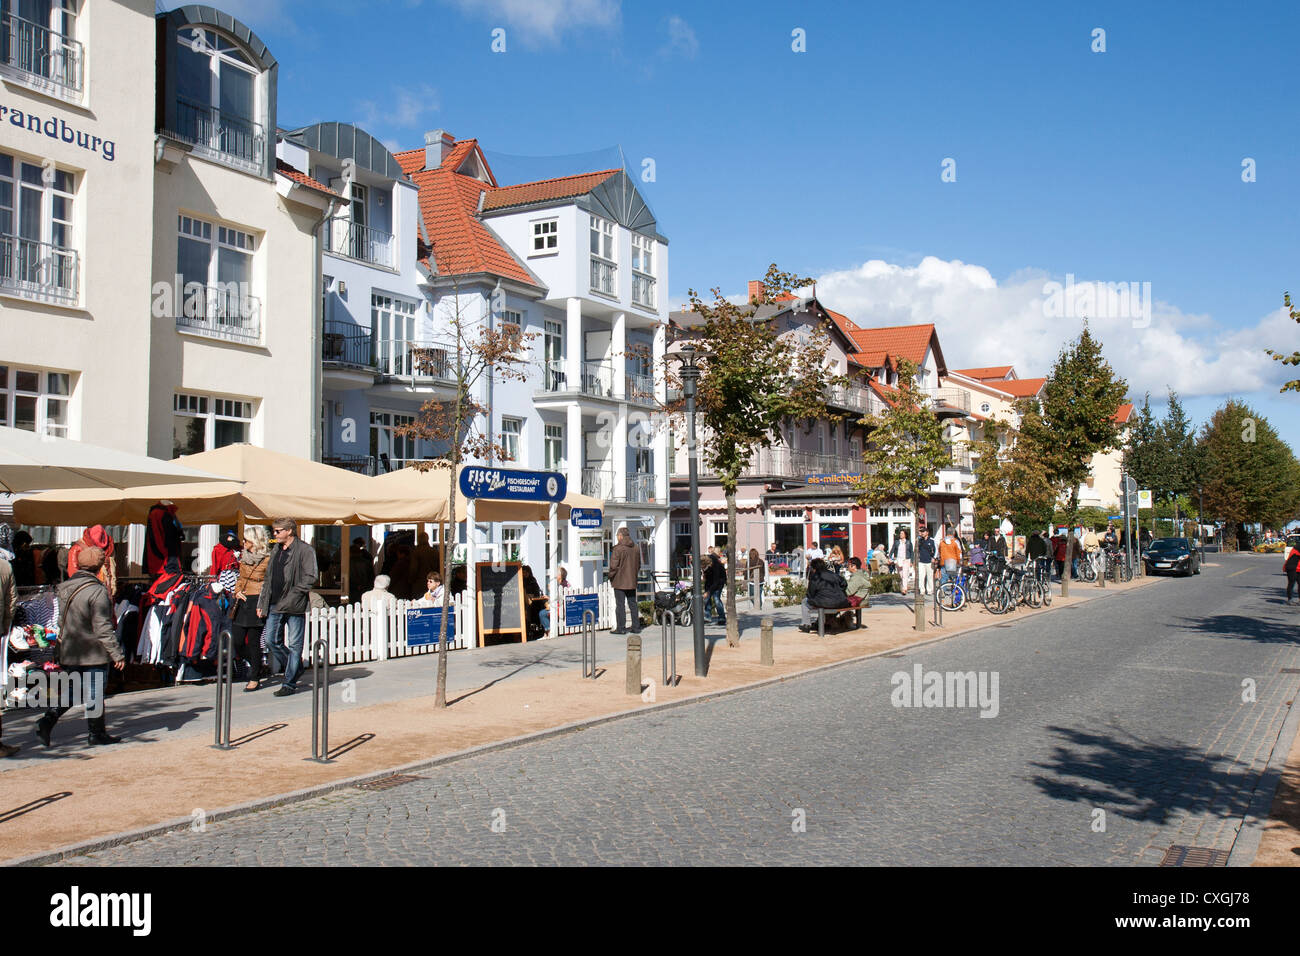 Kuhlungsborn Ost, Germany with the main street - Stock Image